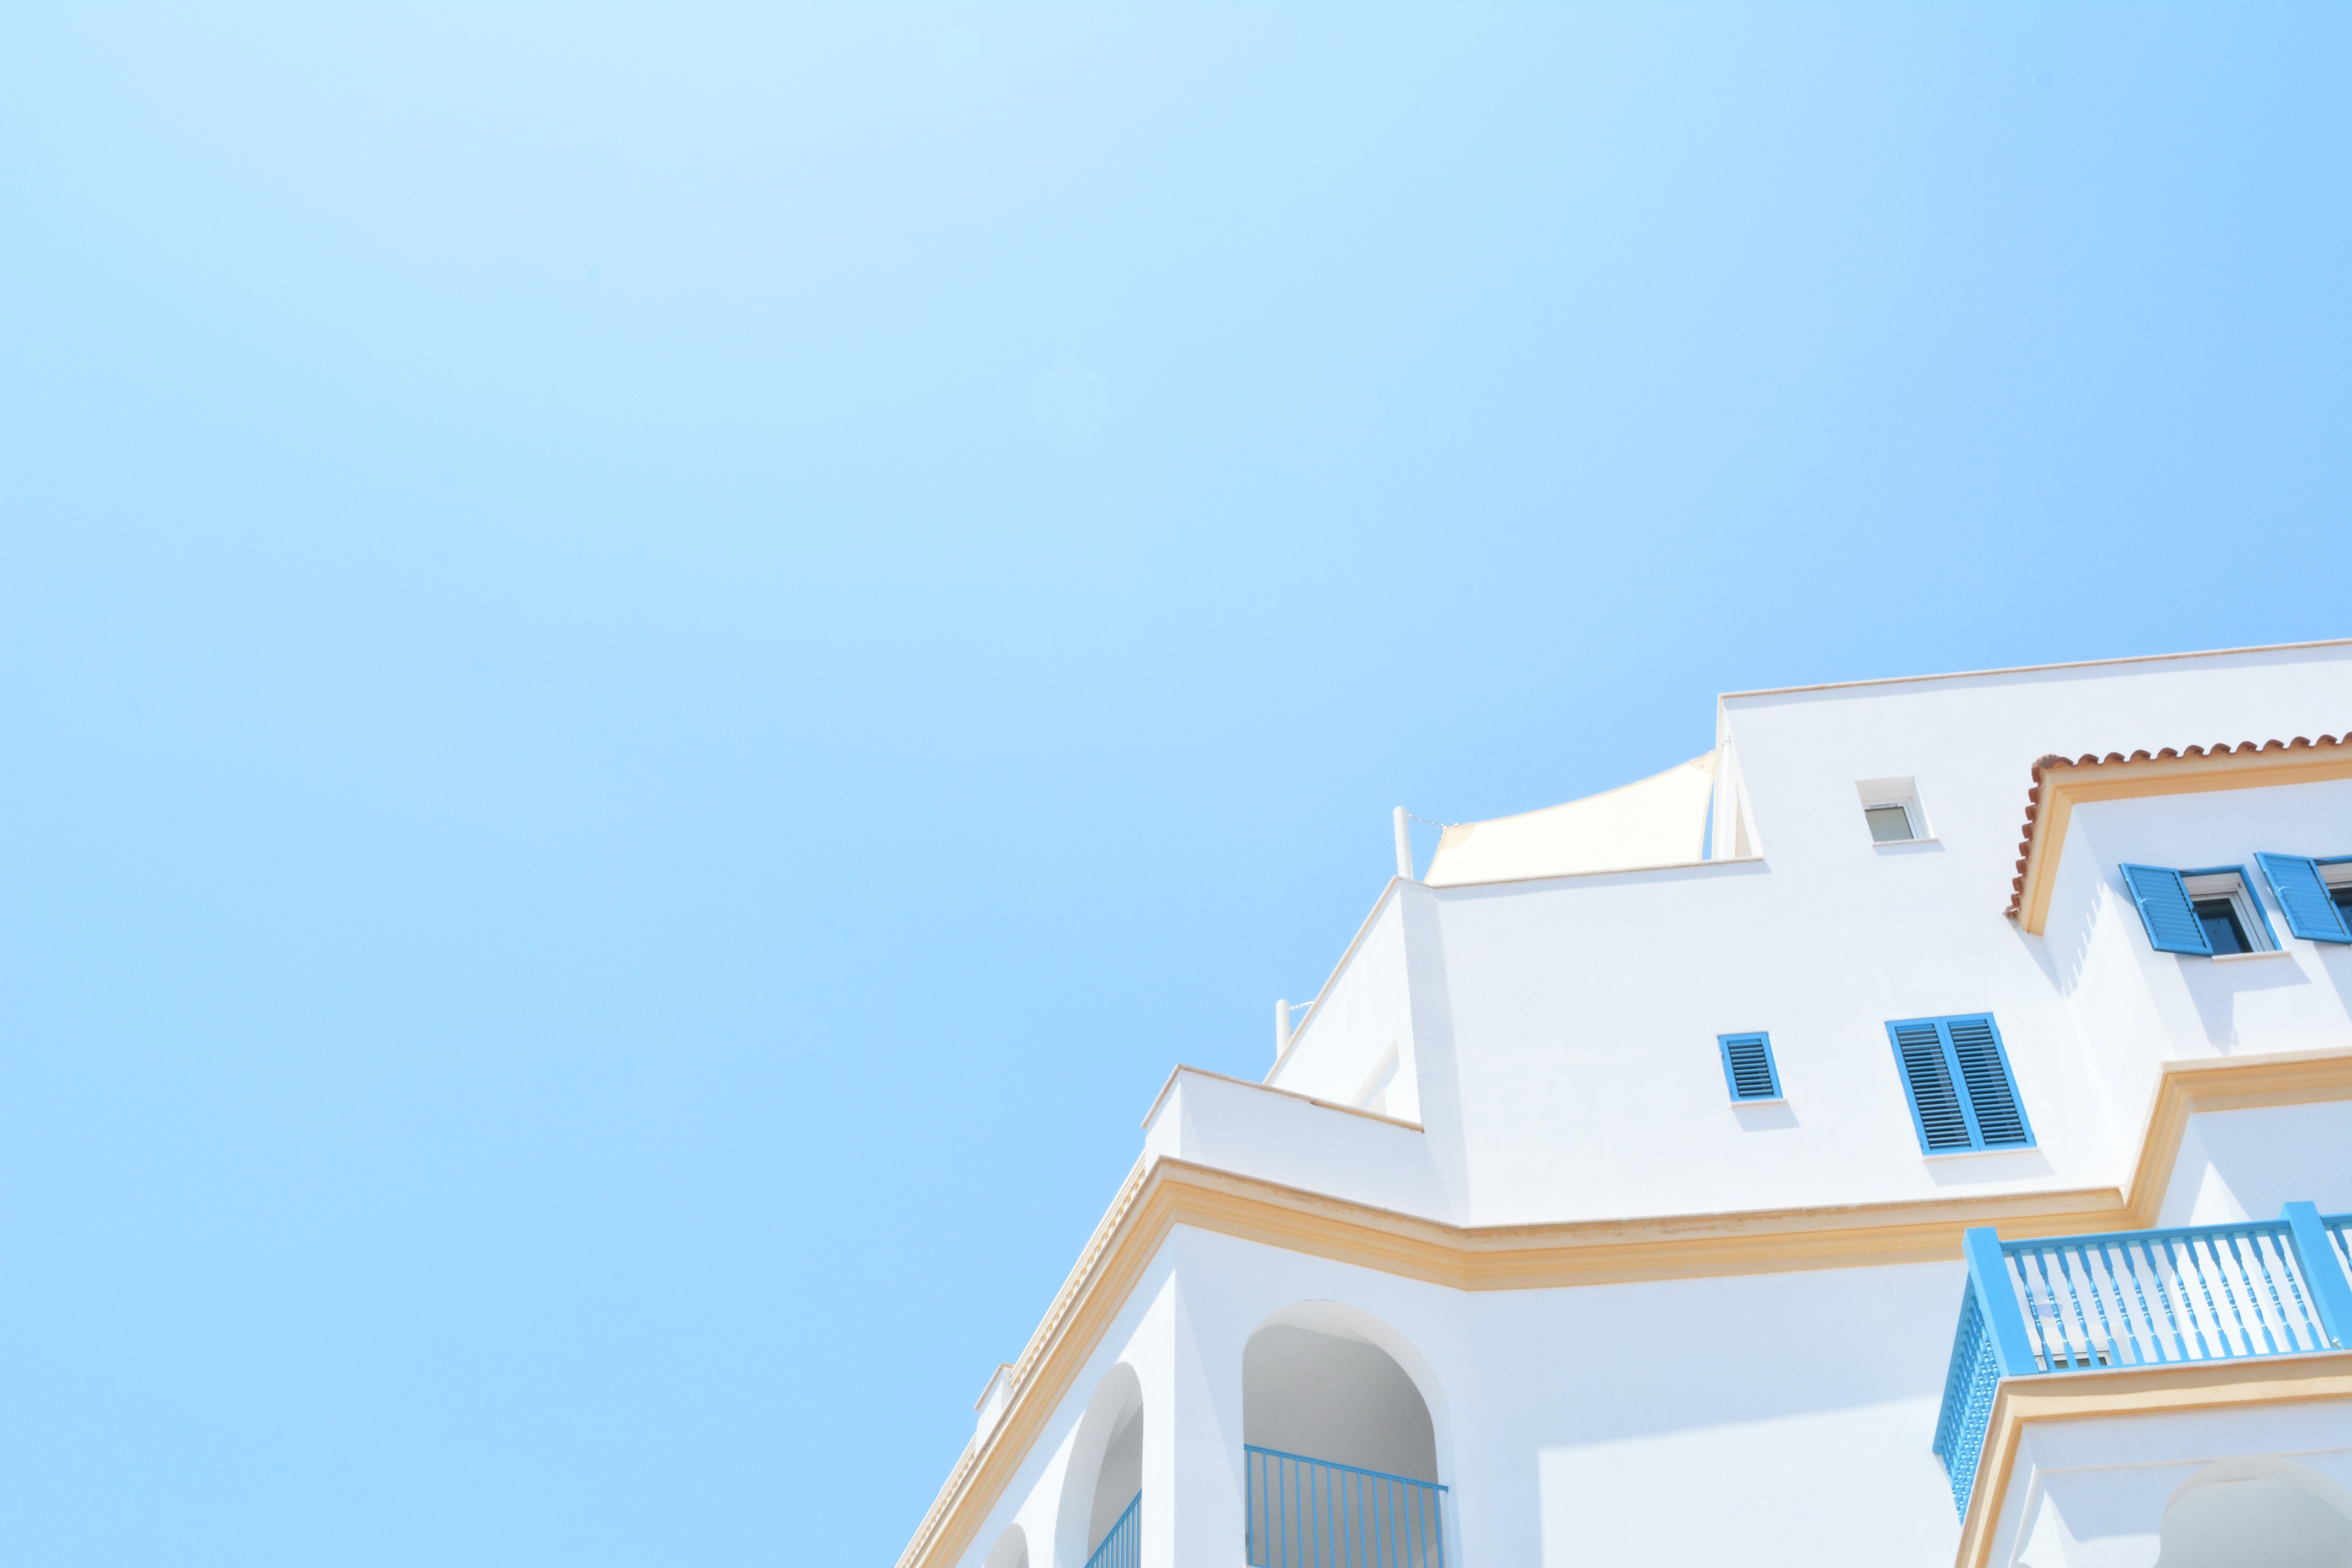 A white Mediterranean-style building under a blue sky